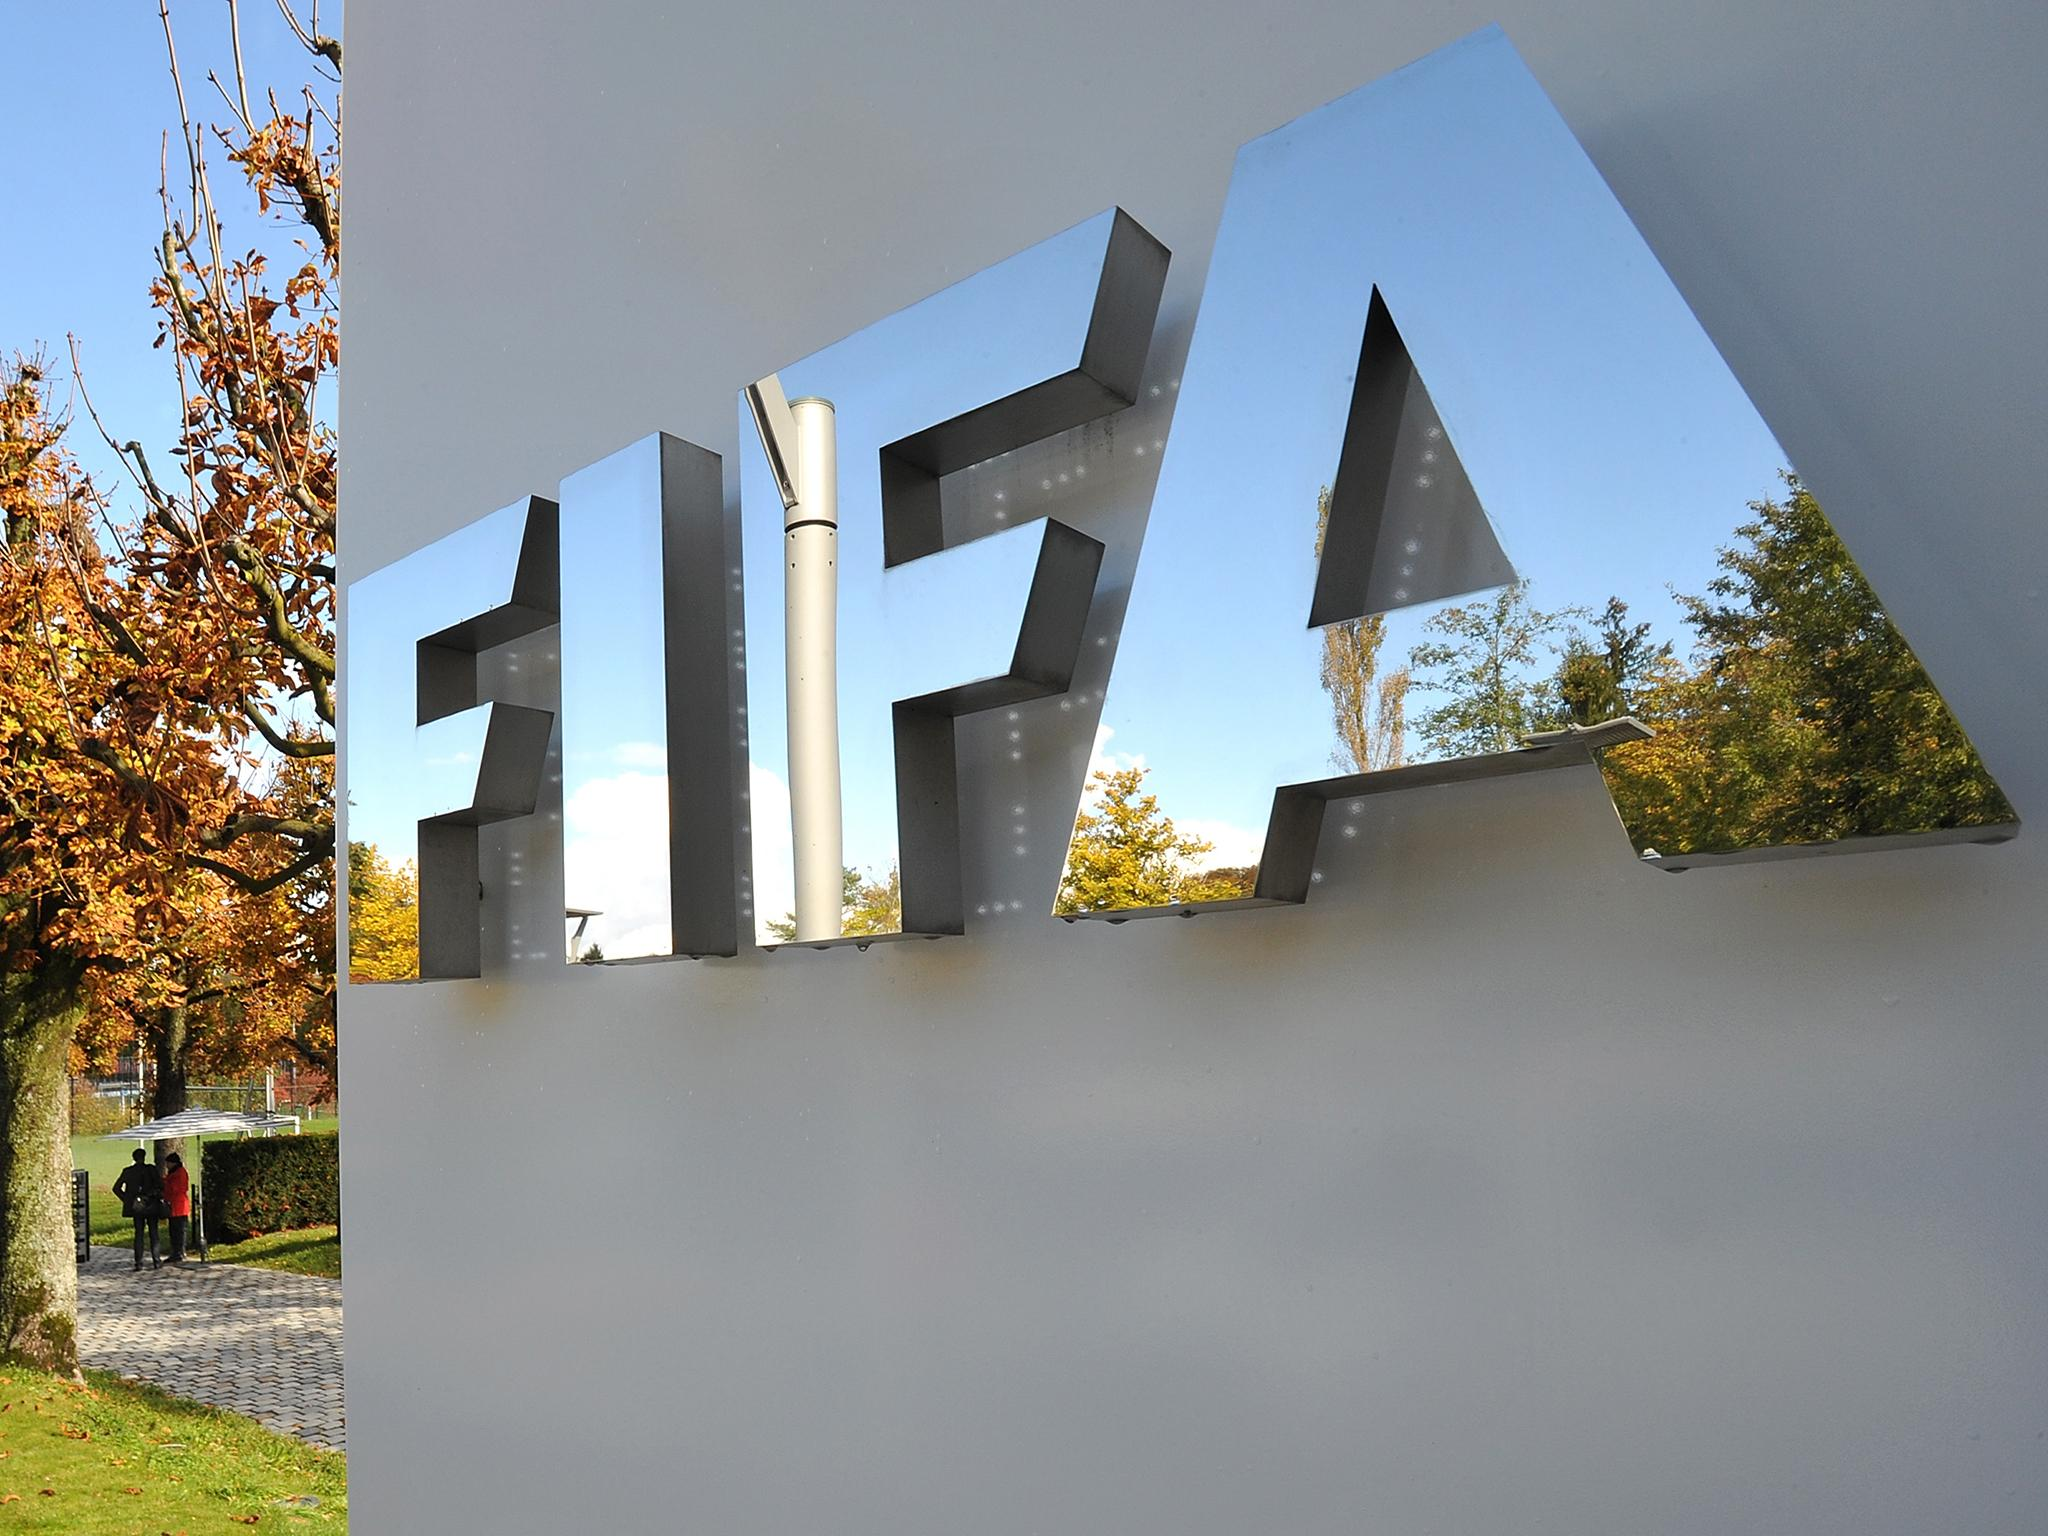 Fifa corruption: Richard Lai, Julio Rocha and Rafael Esquivel banned from football for life